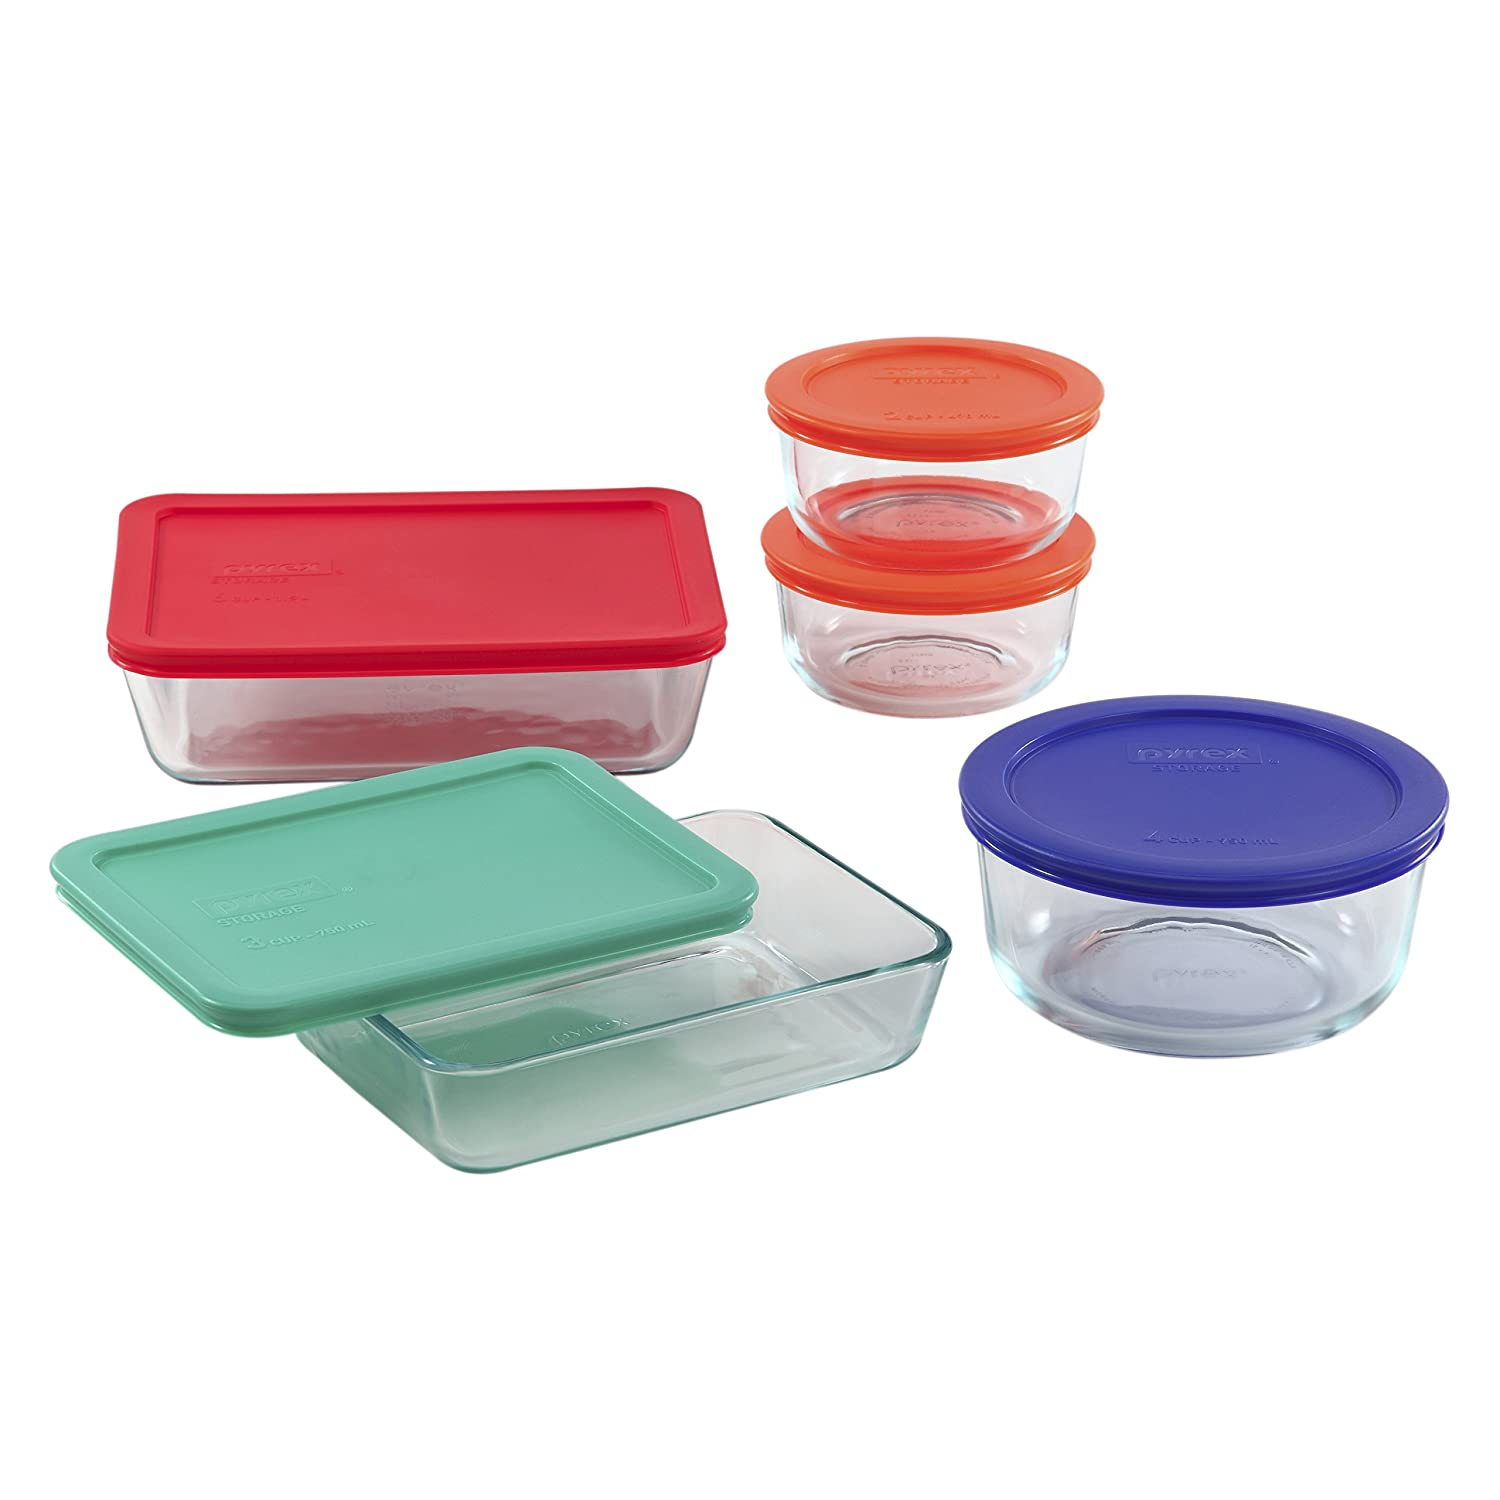 $19.97 (was $44.01) Pyrex Simply Store 10-Piece Glass Food Storage Set